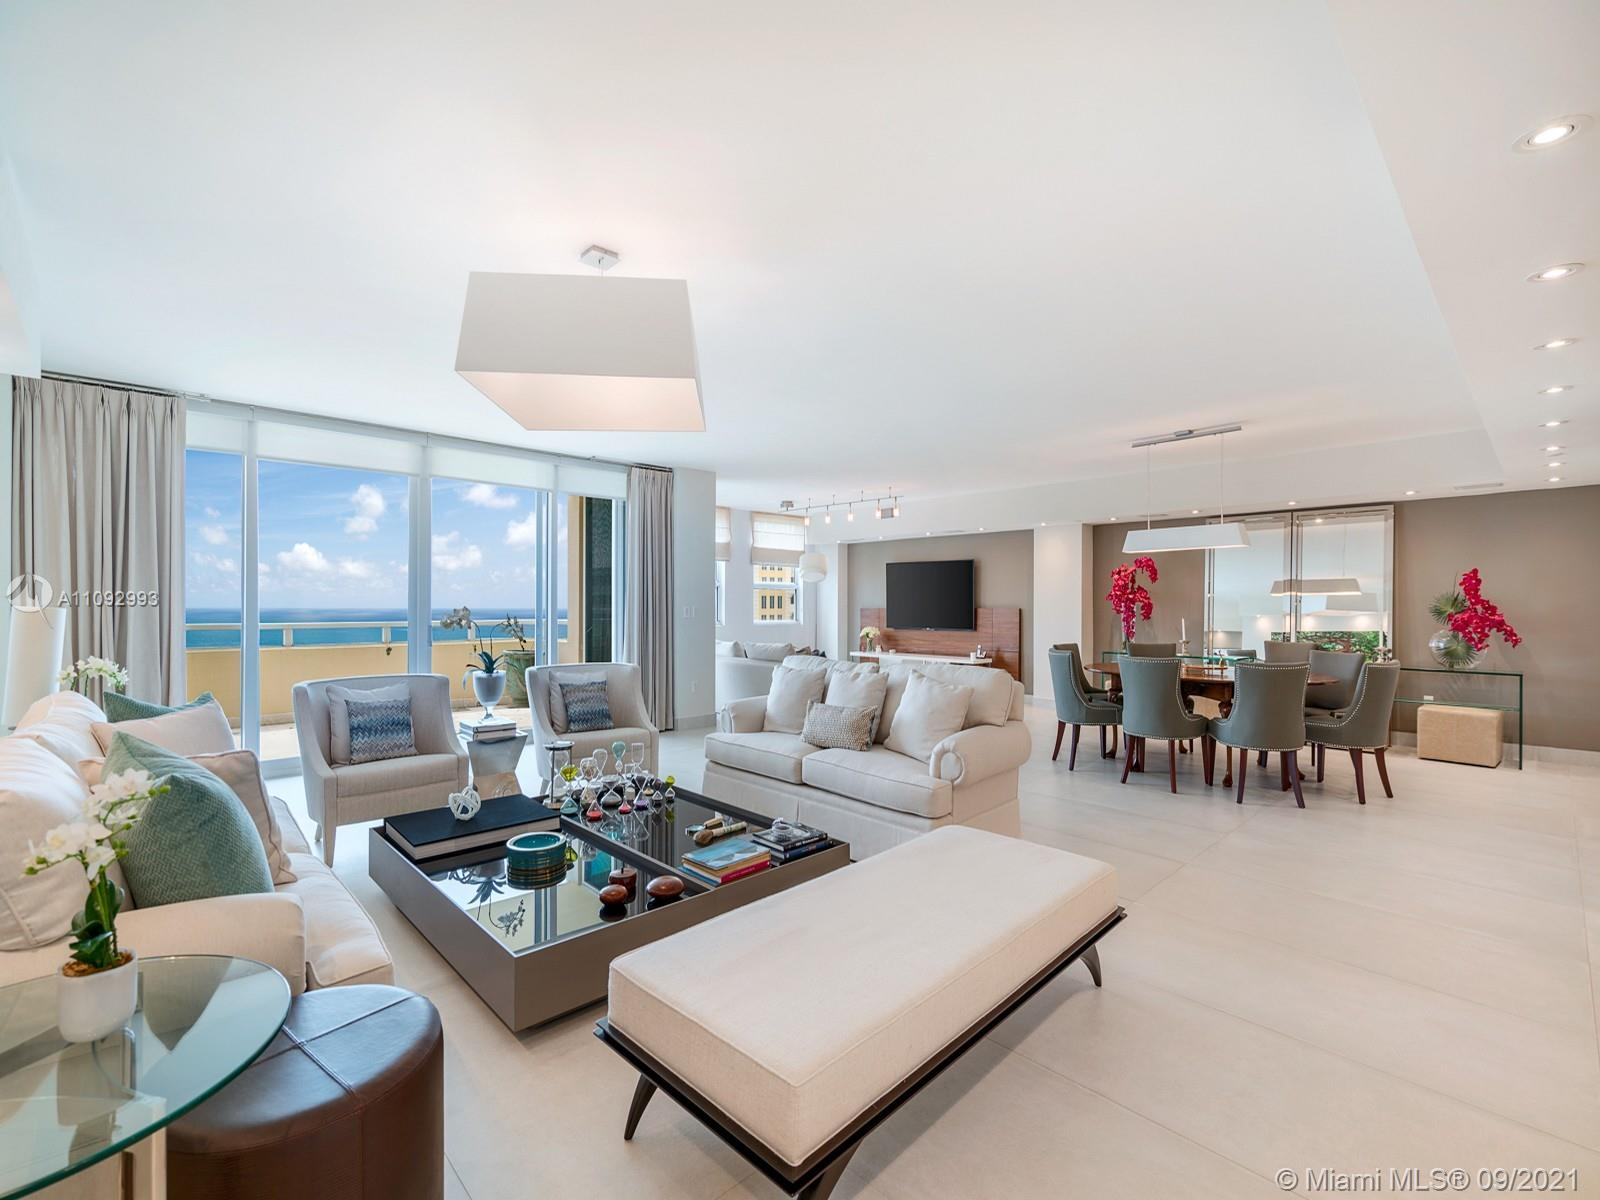 Masterful and modern luxury are uniquely embodied in this 3 bedroom, plus office and  4.5 bath Penthouse with 3,820 Square Feet plus 410 Square Feet of full size balconies boasting  stupendous views of the beach, the Sunrise and the Sunset. This one a kind home was redone with the top most luxurious finishes. Ocean views, bright accents and light pours into every room! Every detail was carefully selected. Highlights include light, sound and shade systems, marble bathrooms, marble flooring, artwork display lighting, and top designer wallpapers throughout. This property also includes  a separate Staff/ In laws Suite located in the building's first floor plus 2 assigned garage spaces and a Storage unit.